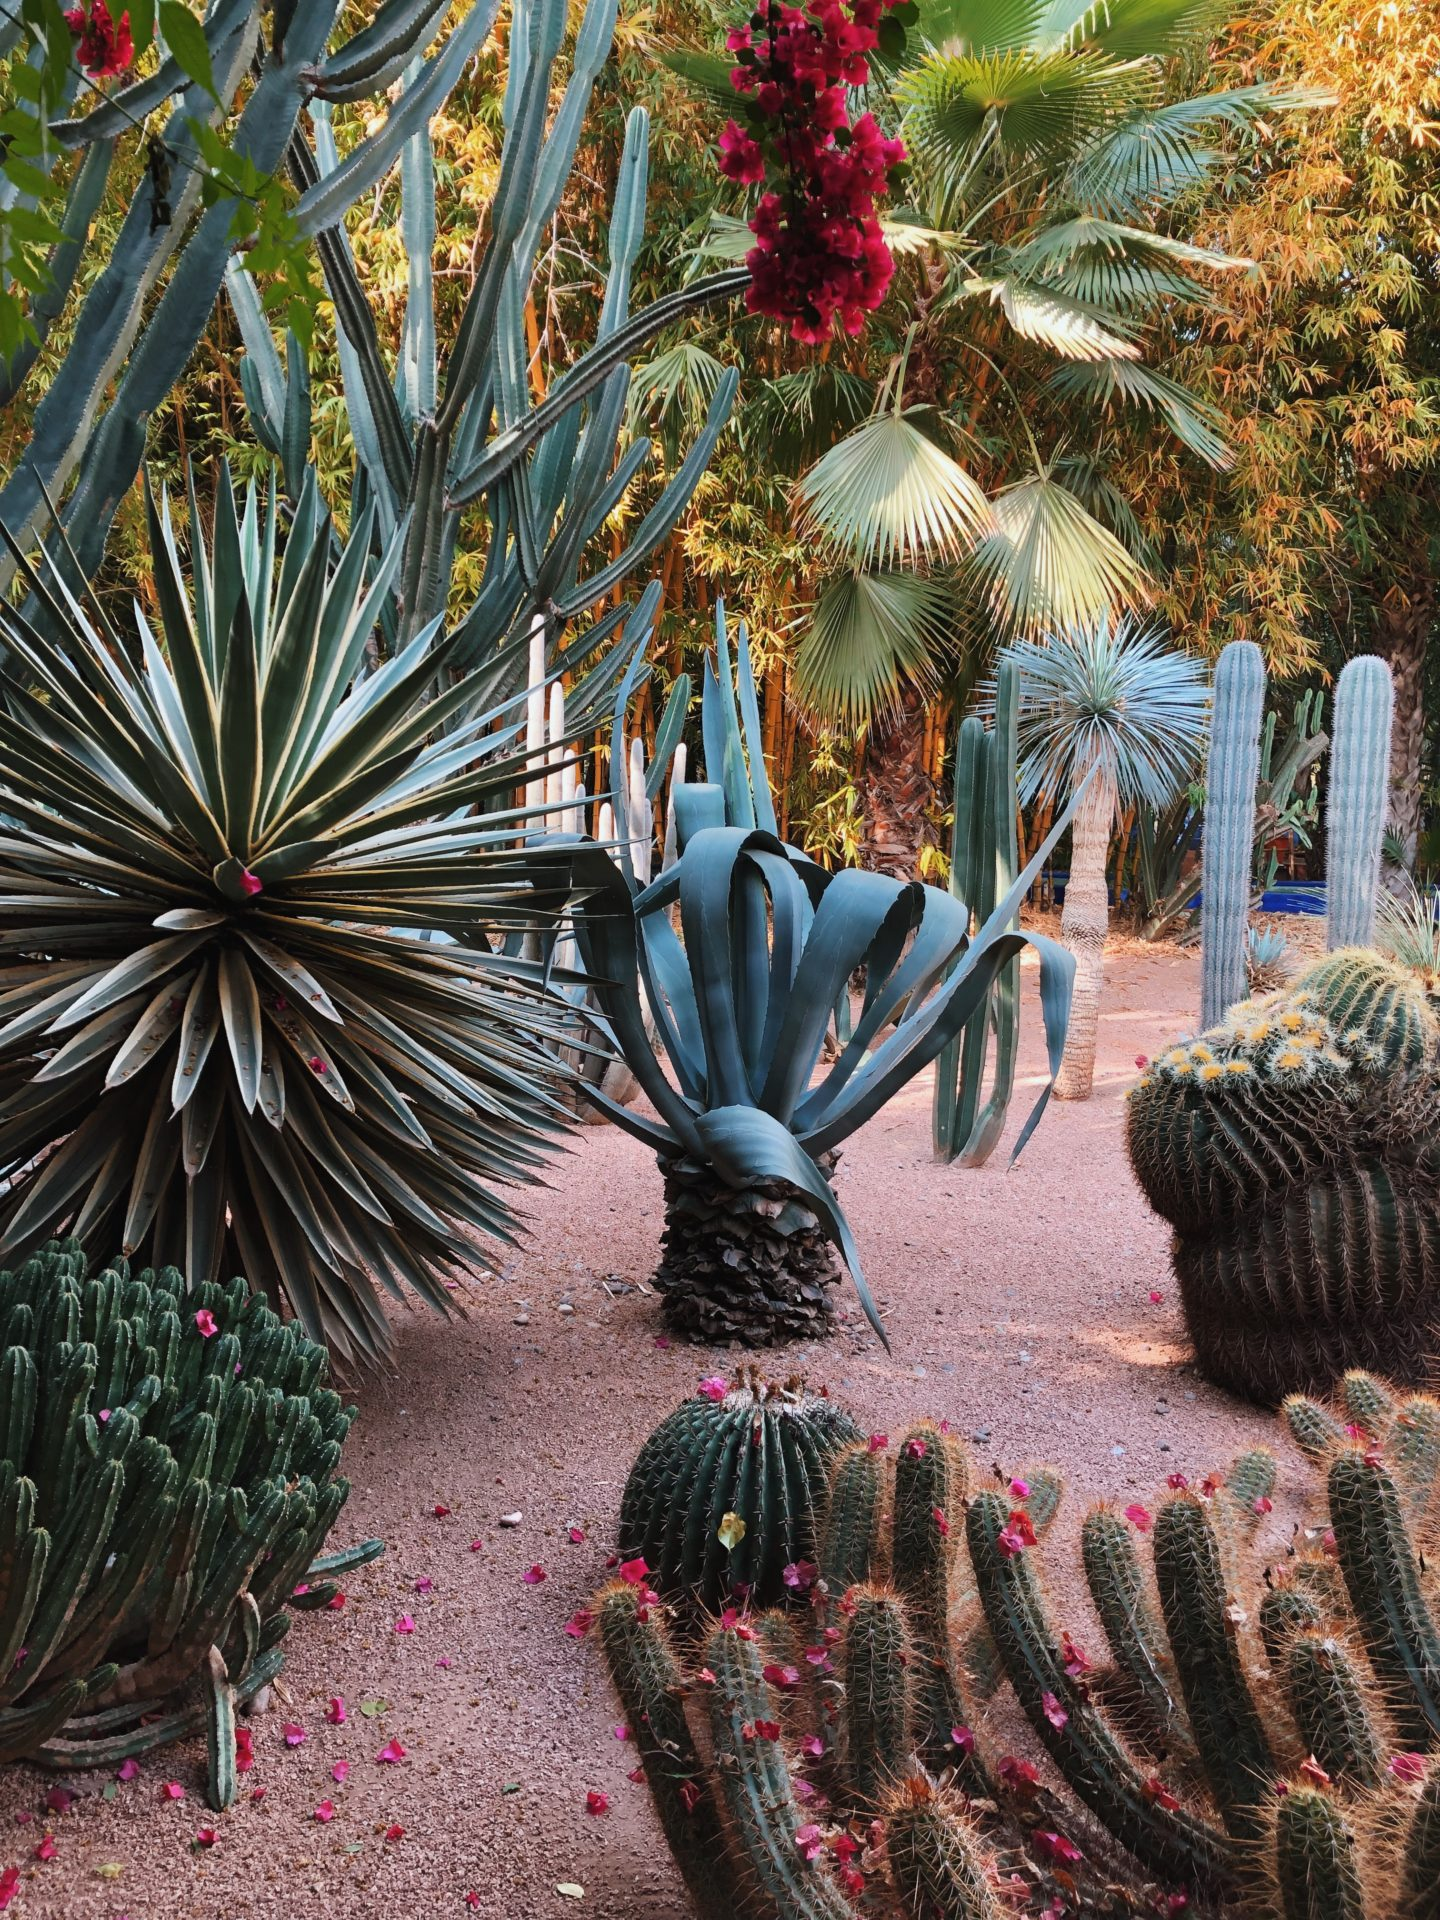 Every shape and style of Cactus imaginable at the Majorelle Gardens in Marrakech Morocco.